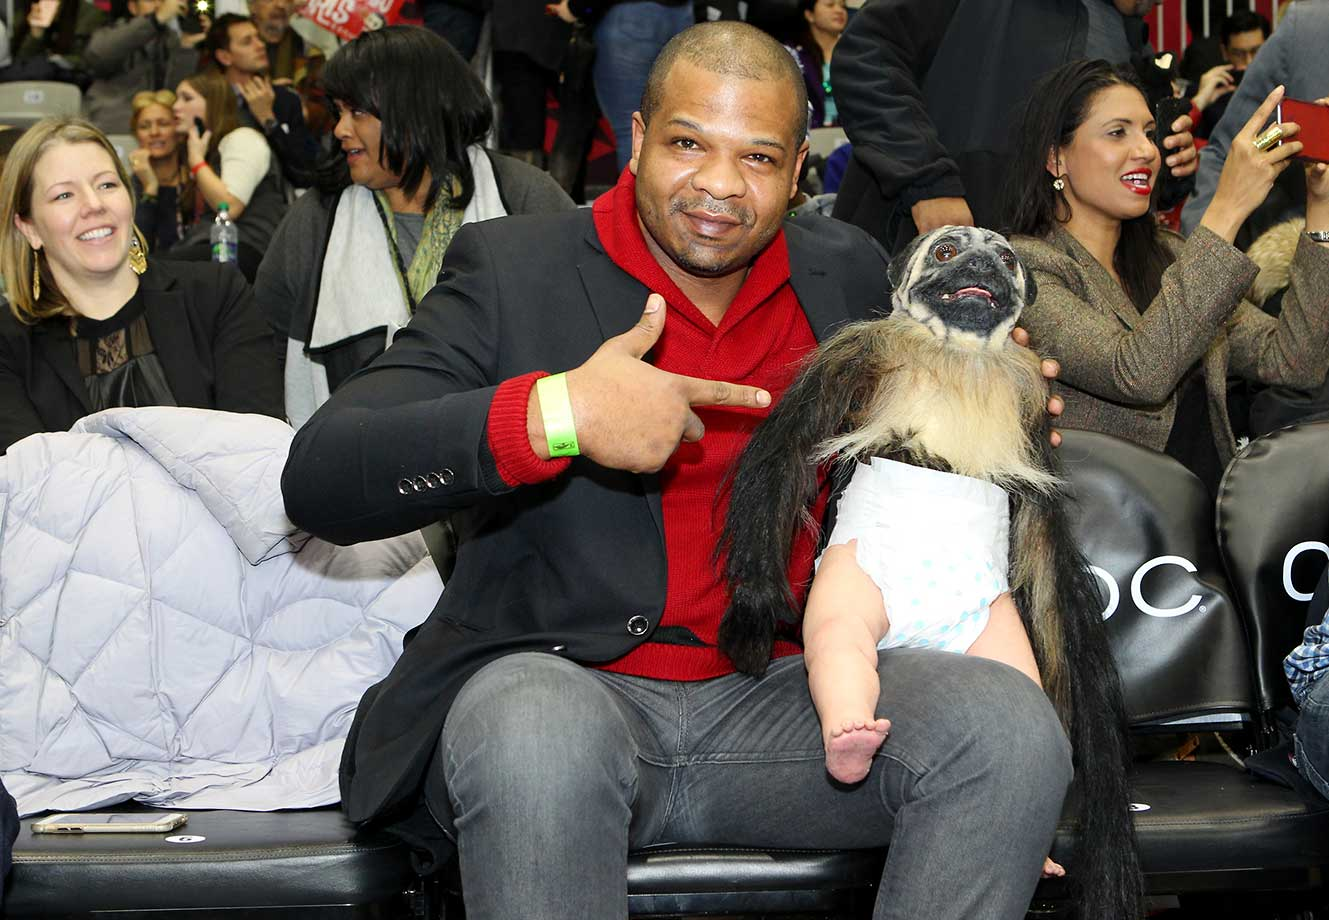 Puppy Monkey Baby sits court side during the NBA All-Star celebrity game in Toronto.